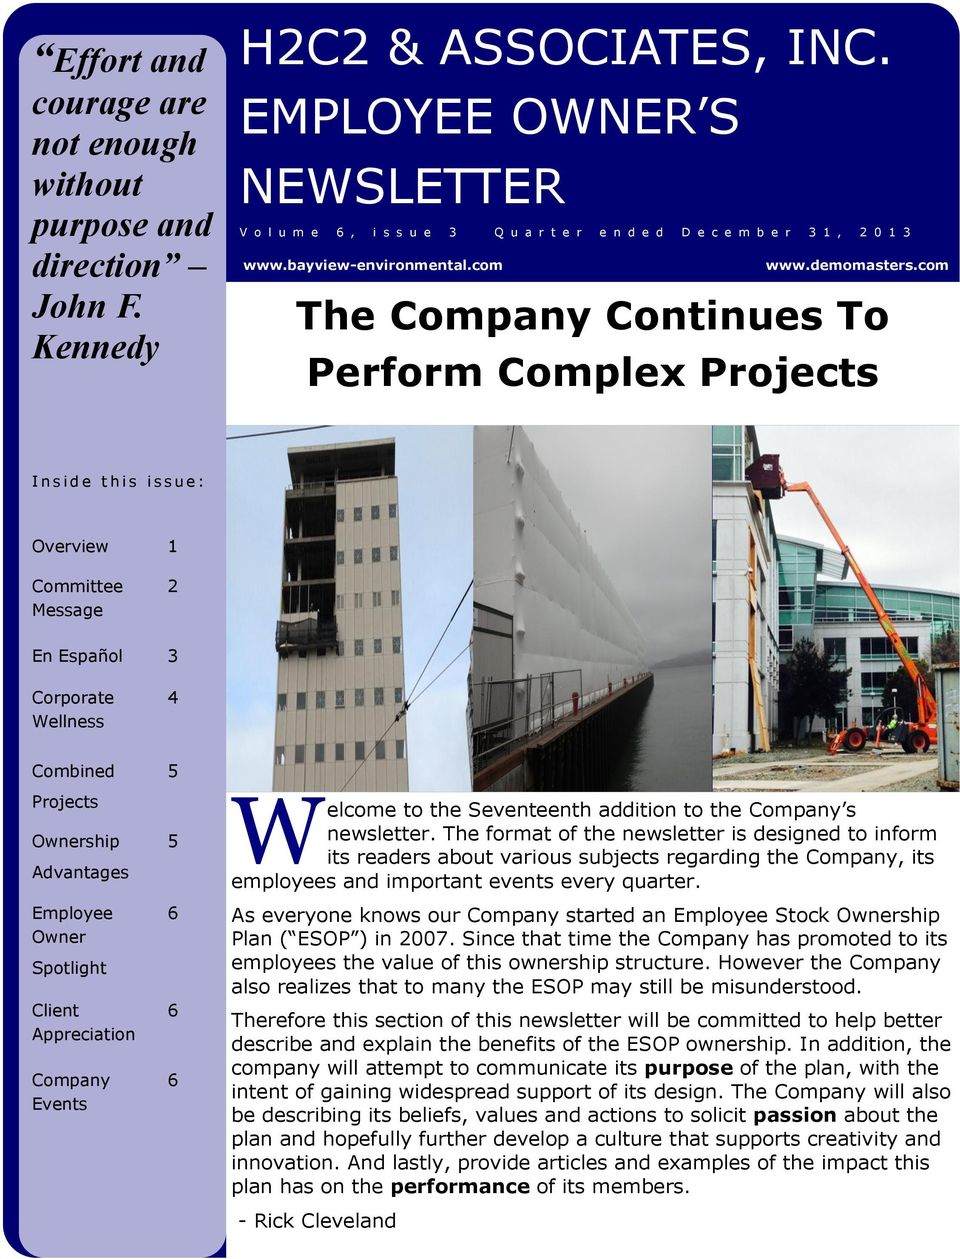 com The Company Continues To Perform Complex Projects I n s i d e t h i s i s s u e : Overview 1 Committee Message 2 En Español 3 Corporate Wellness 4 Combined Projects Ownership Advantages Employee